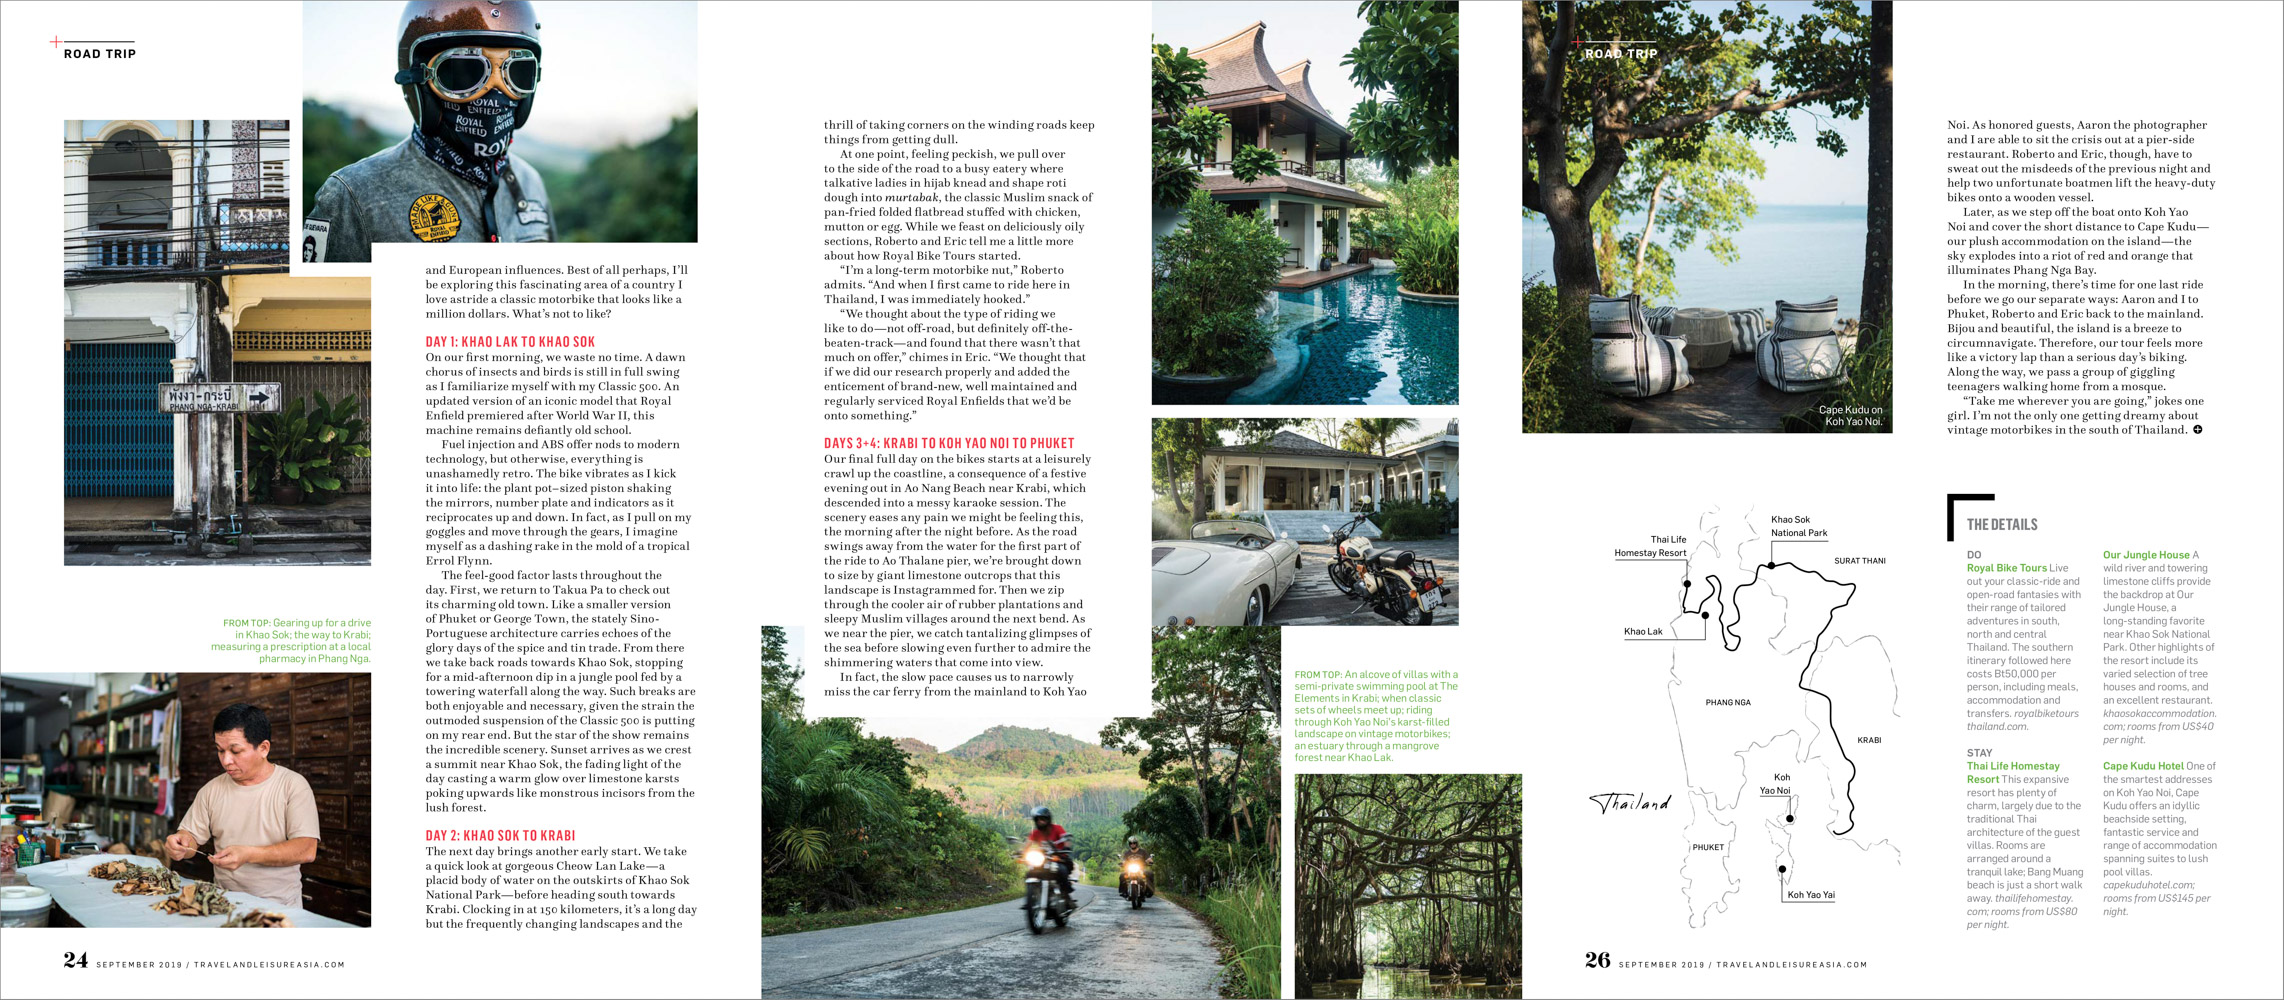 A road trip in southern Thailand for Travel + Leisure Southeast Asia.